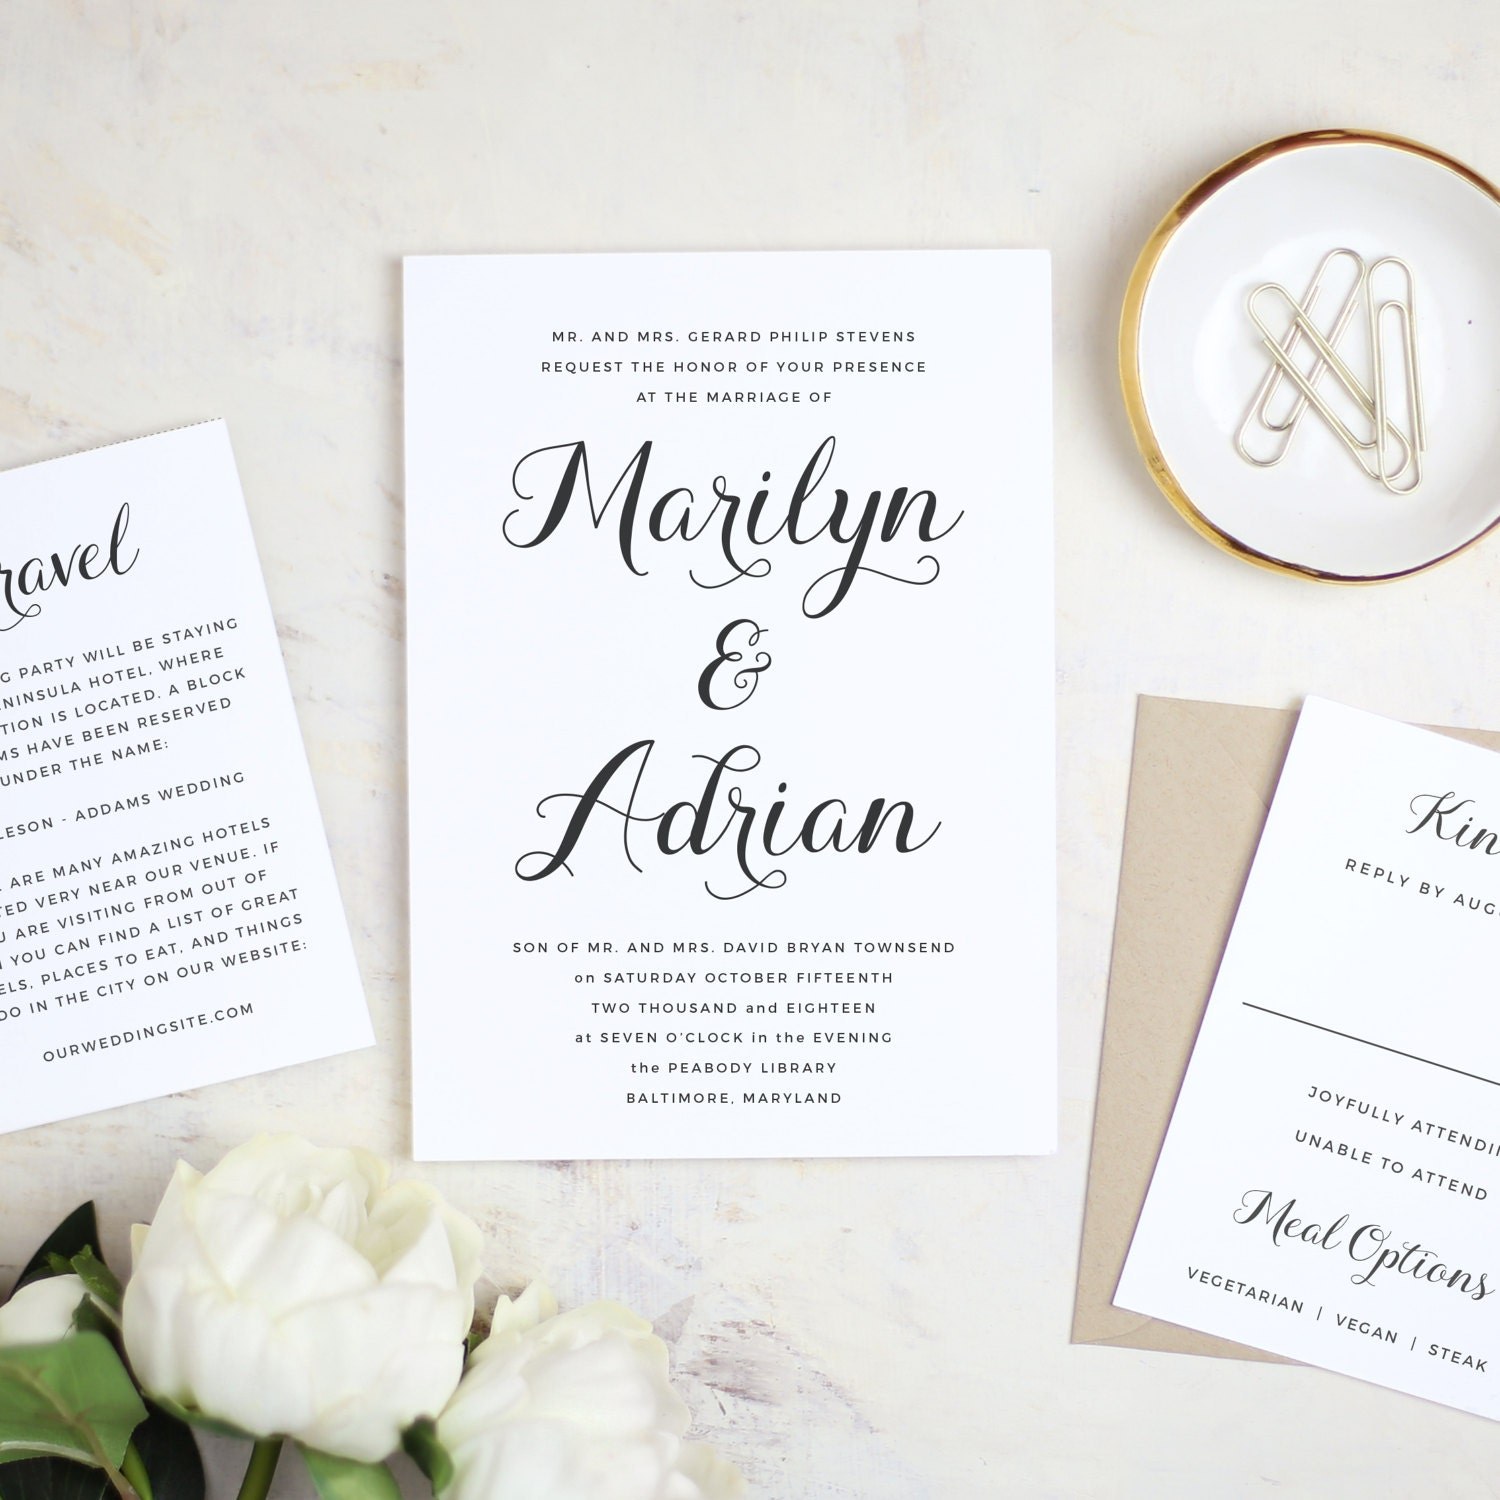 Instant printable wedding invitation template calligrapher script instant printable wedding invitation template calligrapher script word or pages mac or pc editable artwork colors instant download stopboris Image collections